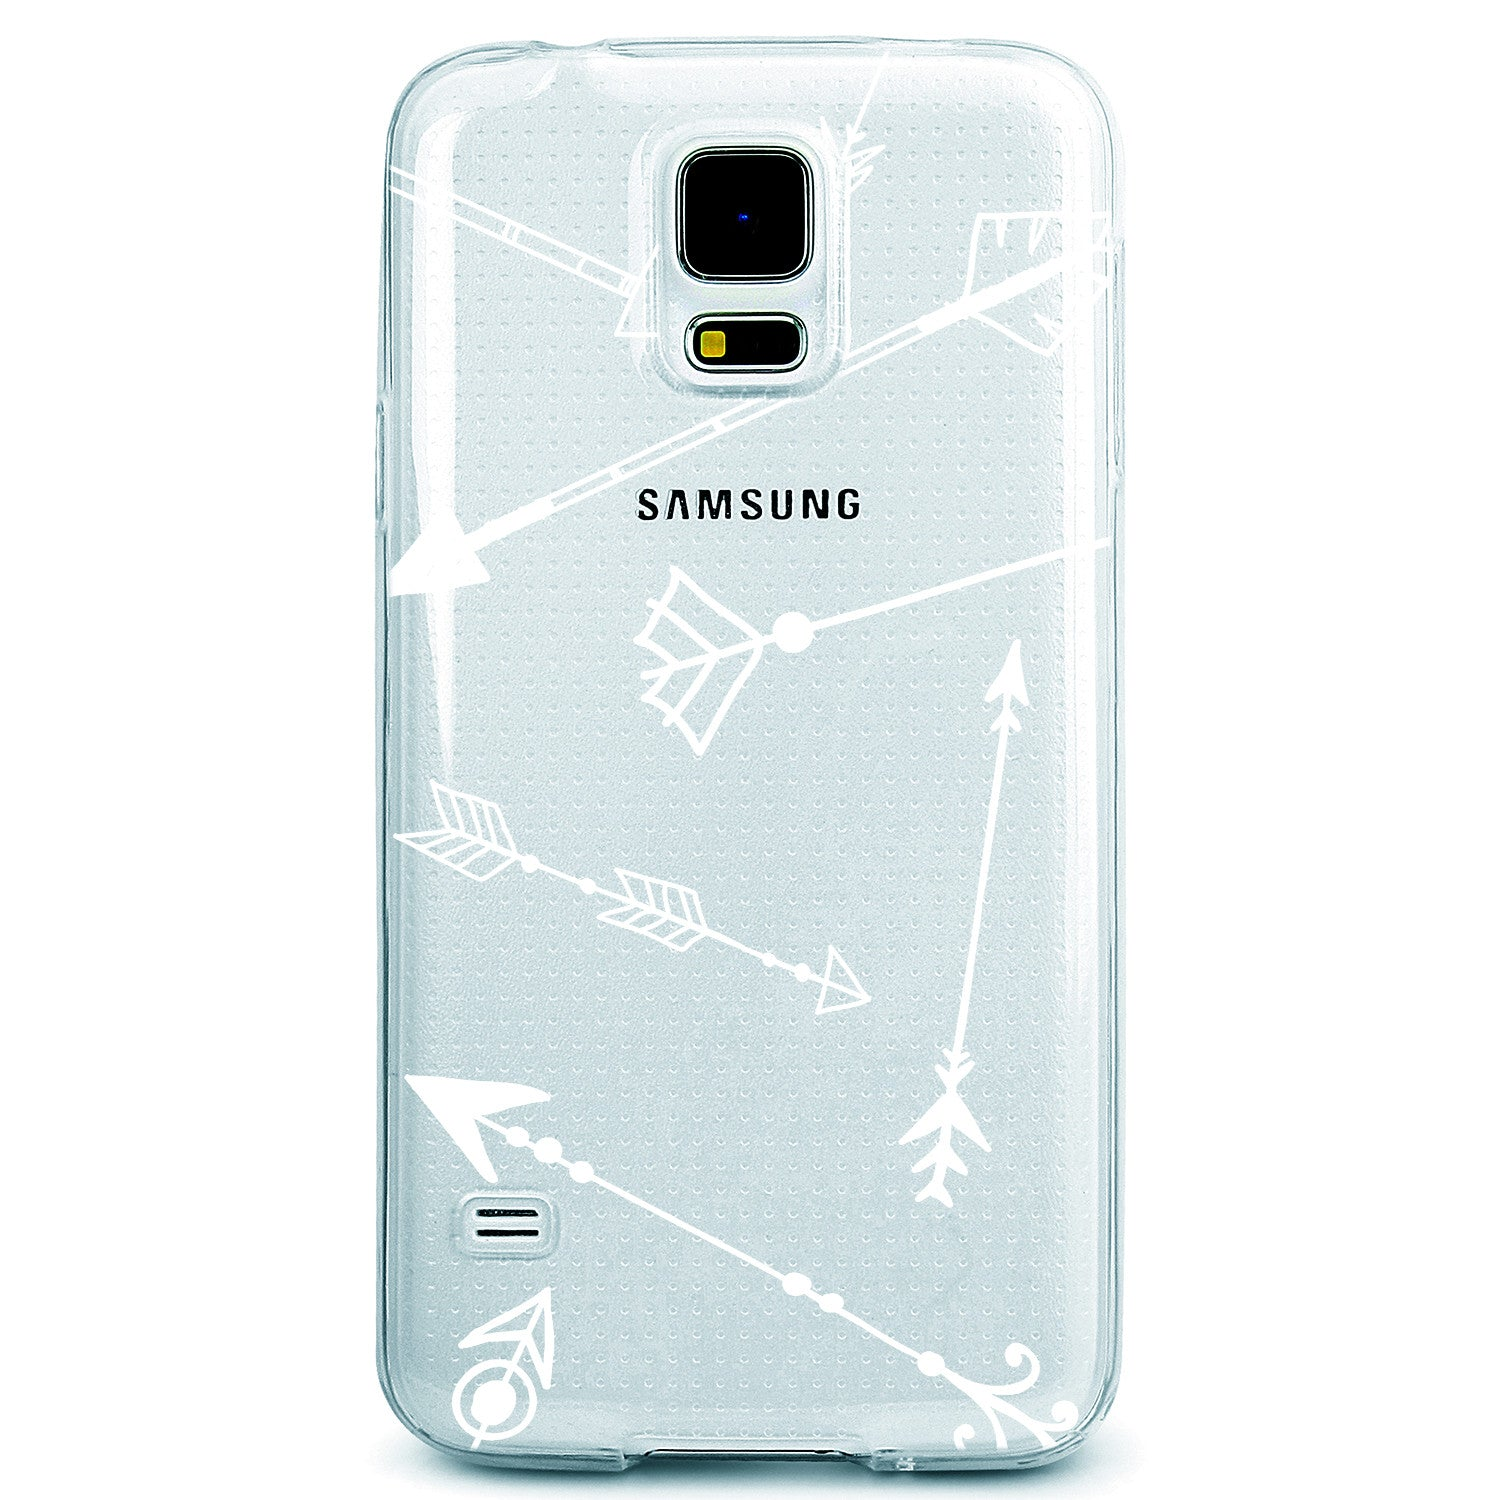 Black or White Bow and Arrows Clear TPU Case Cover for iPhone and Galaxy